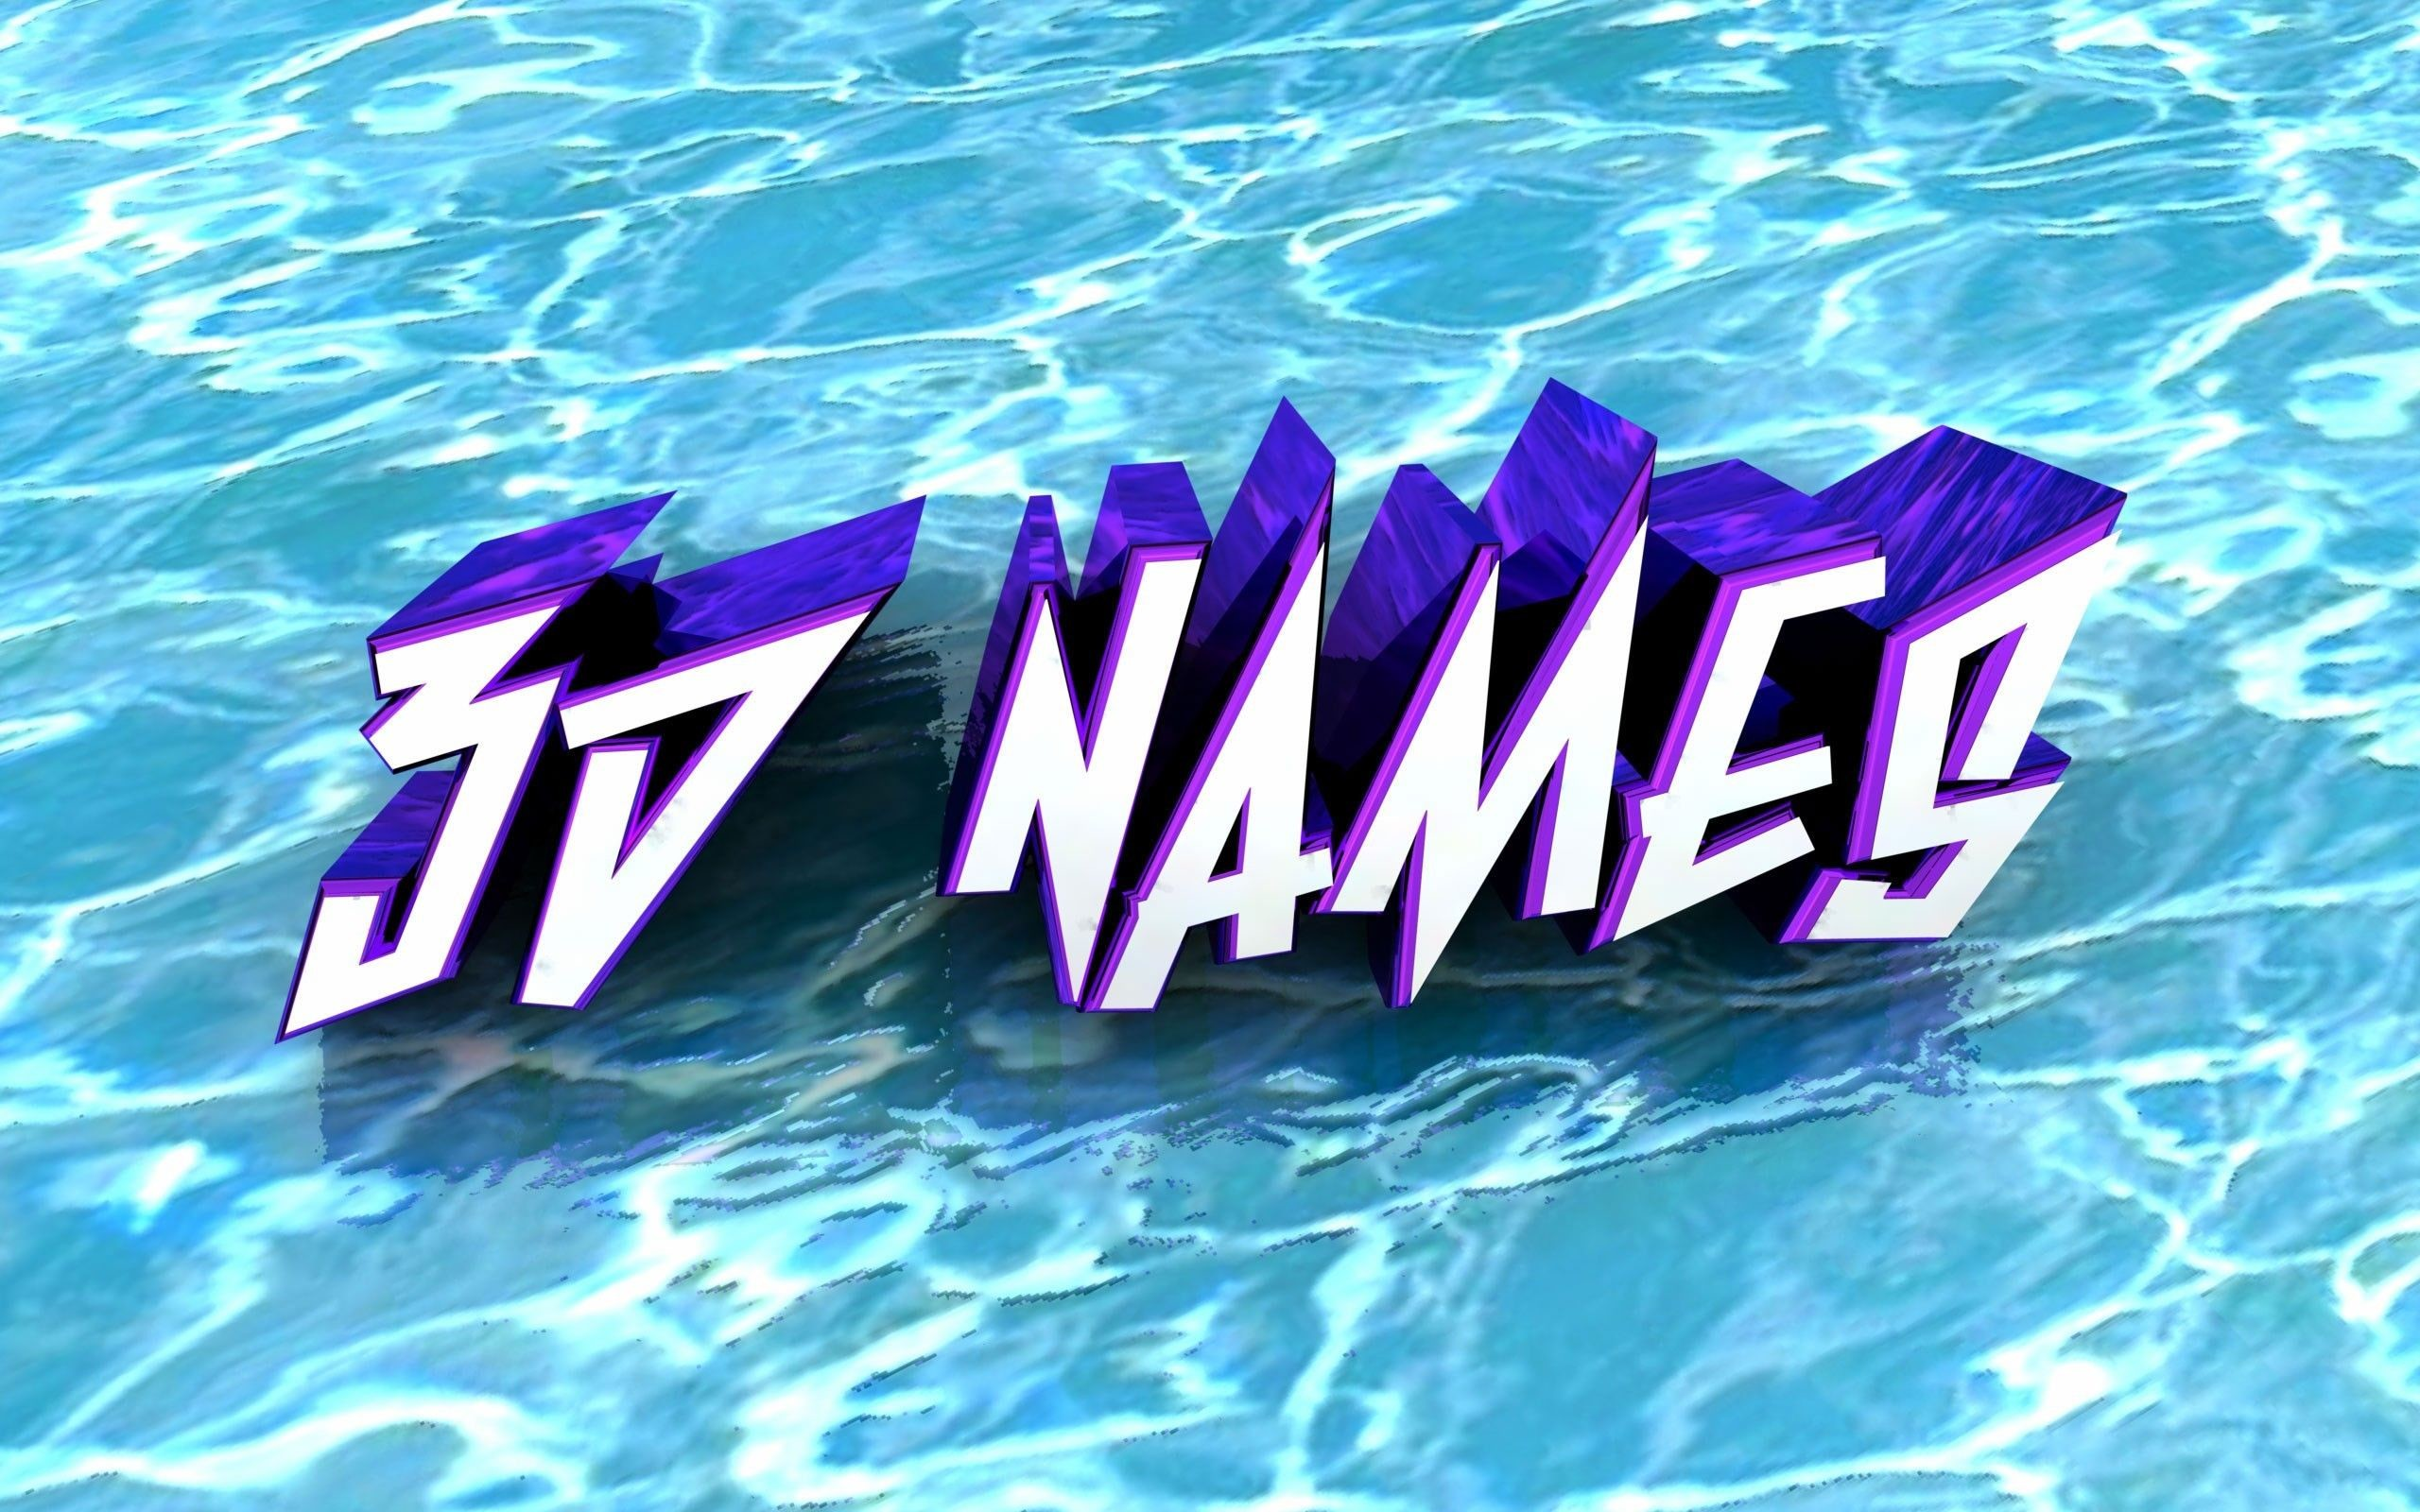 3D Names Wallpapers (62+ images)